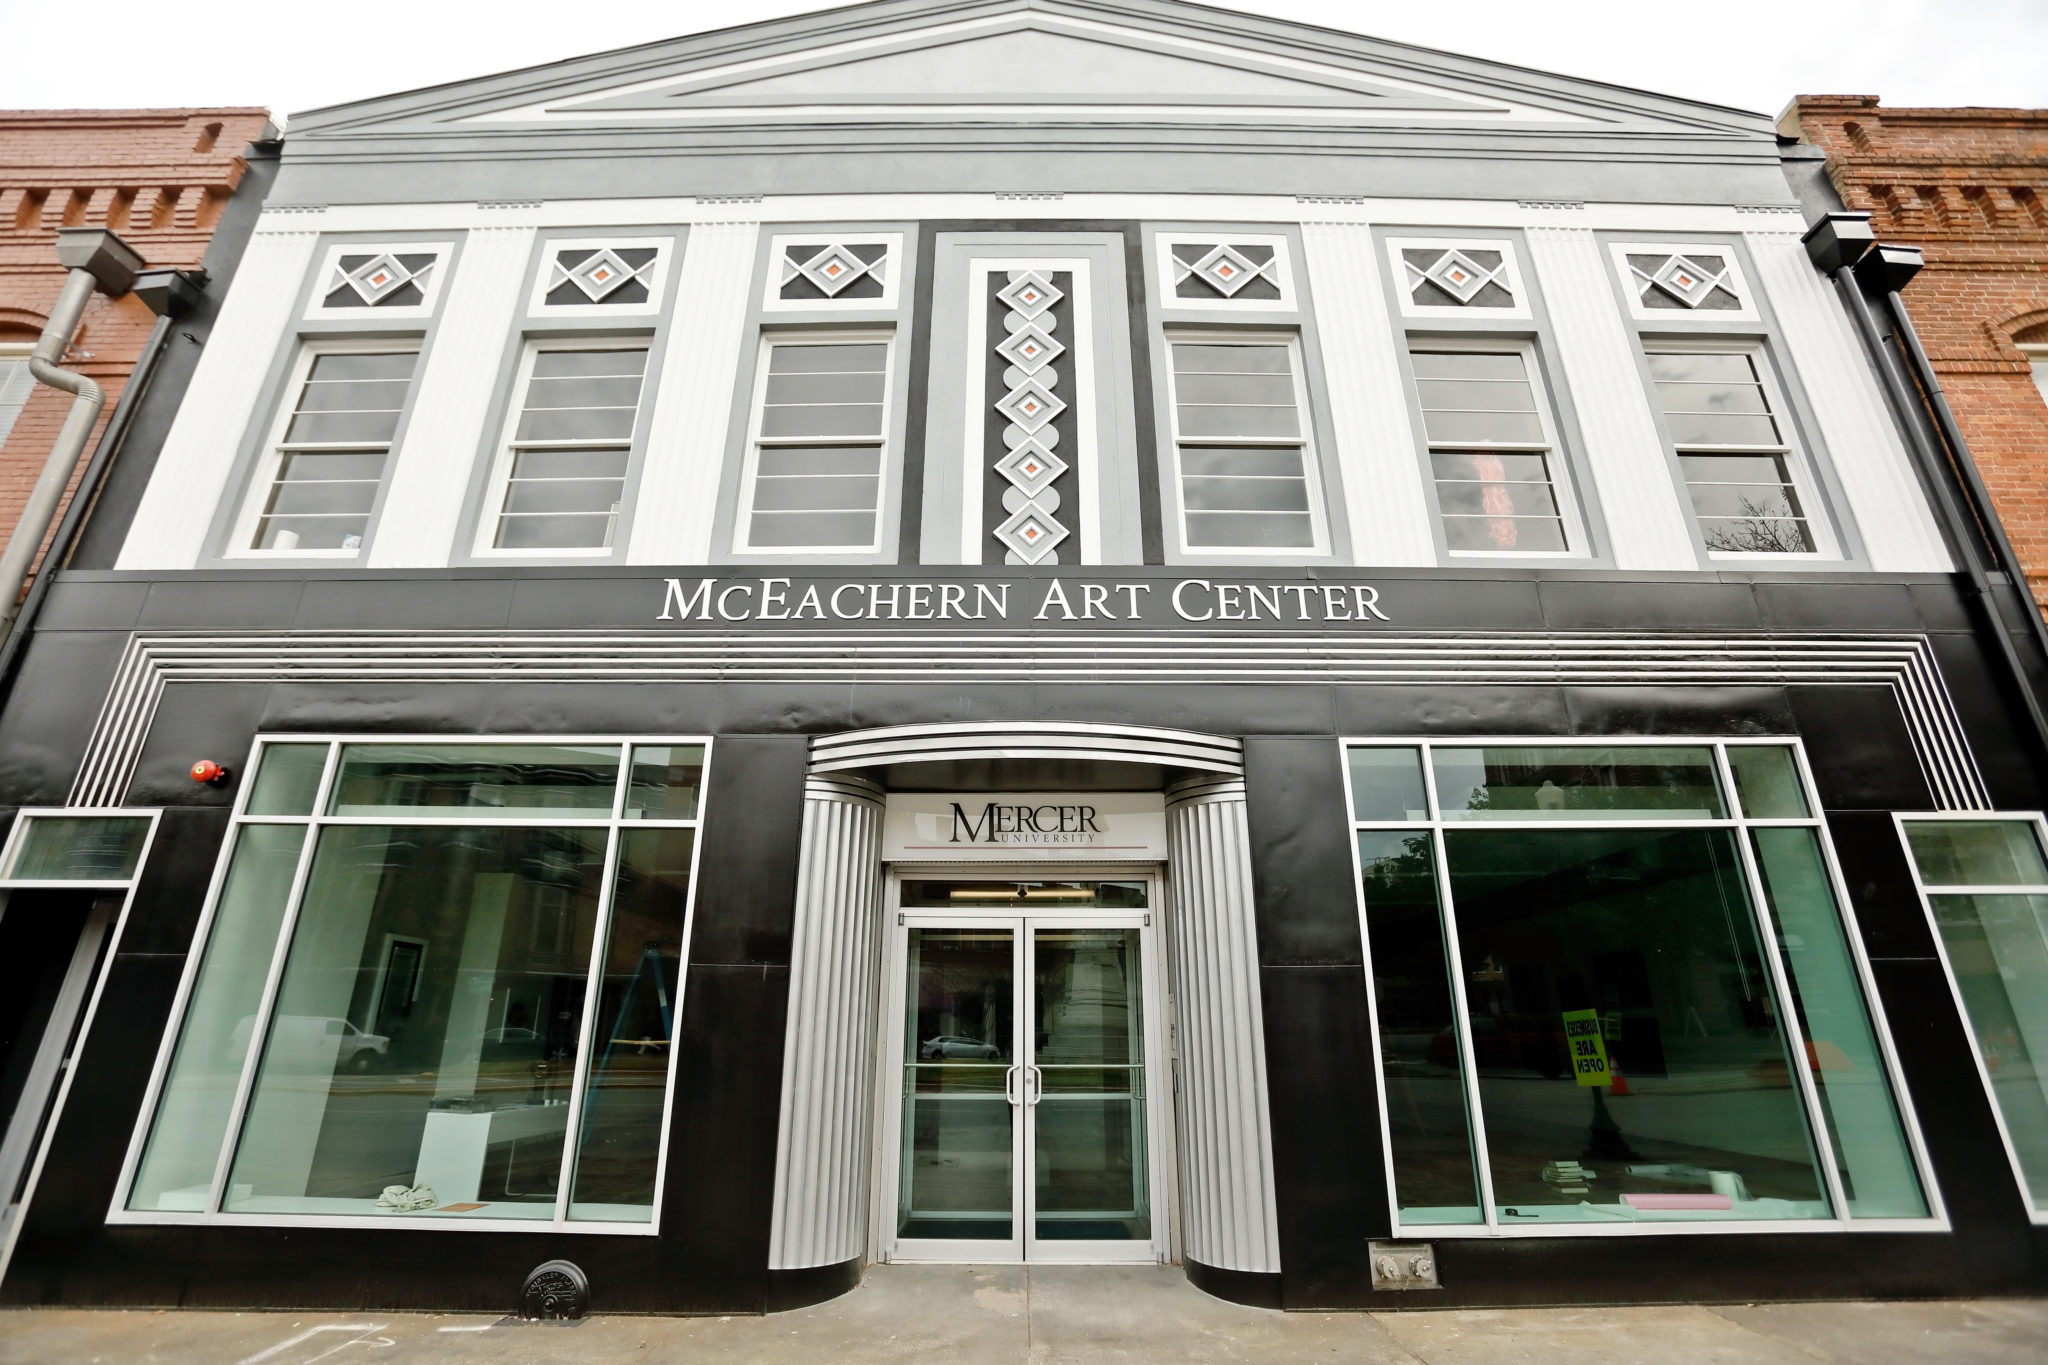 McEachern Art Center